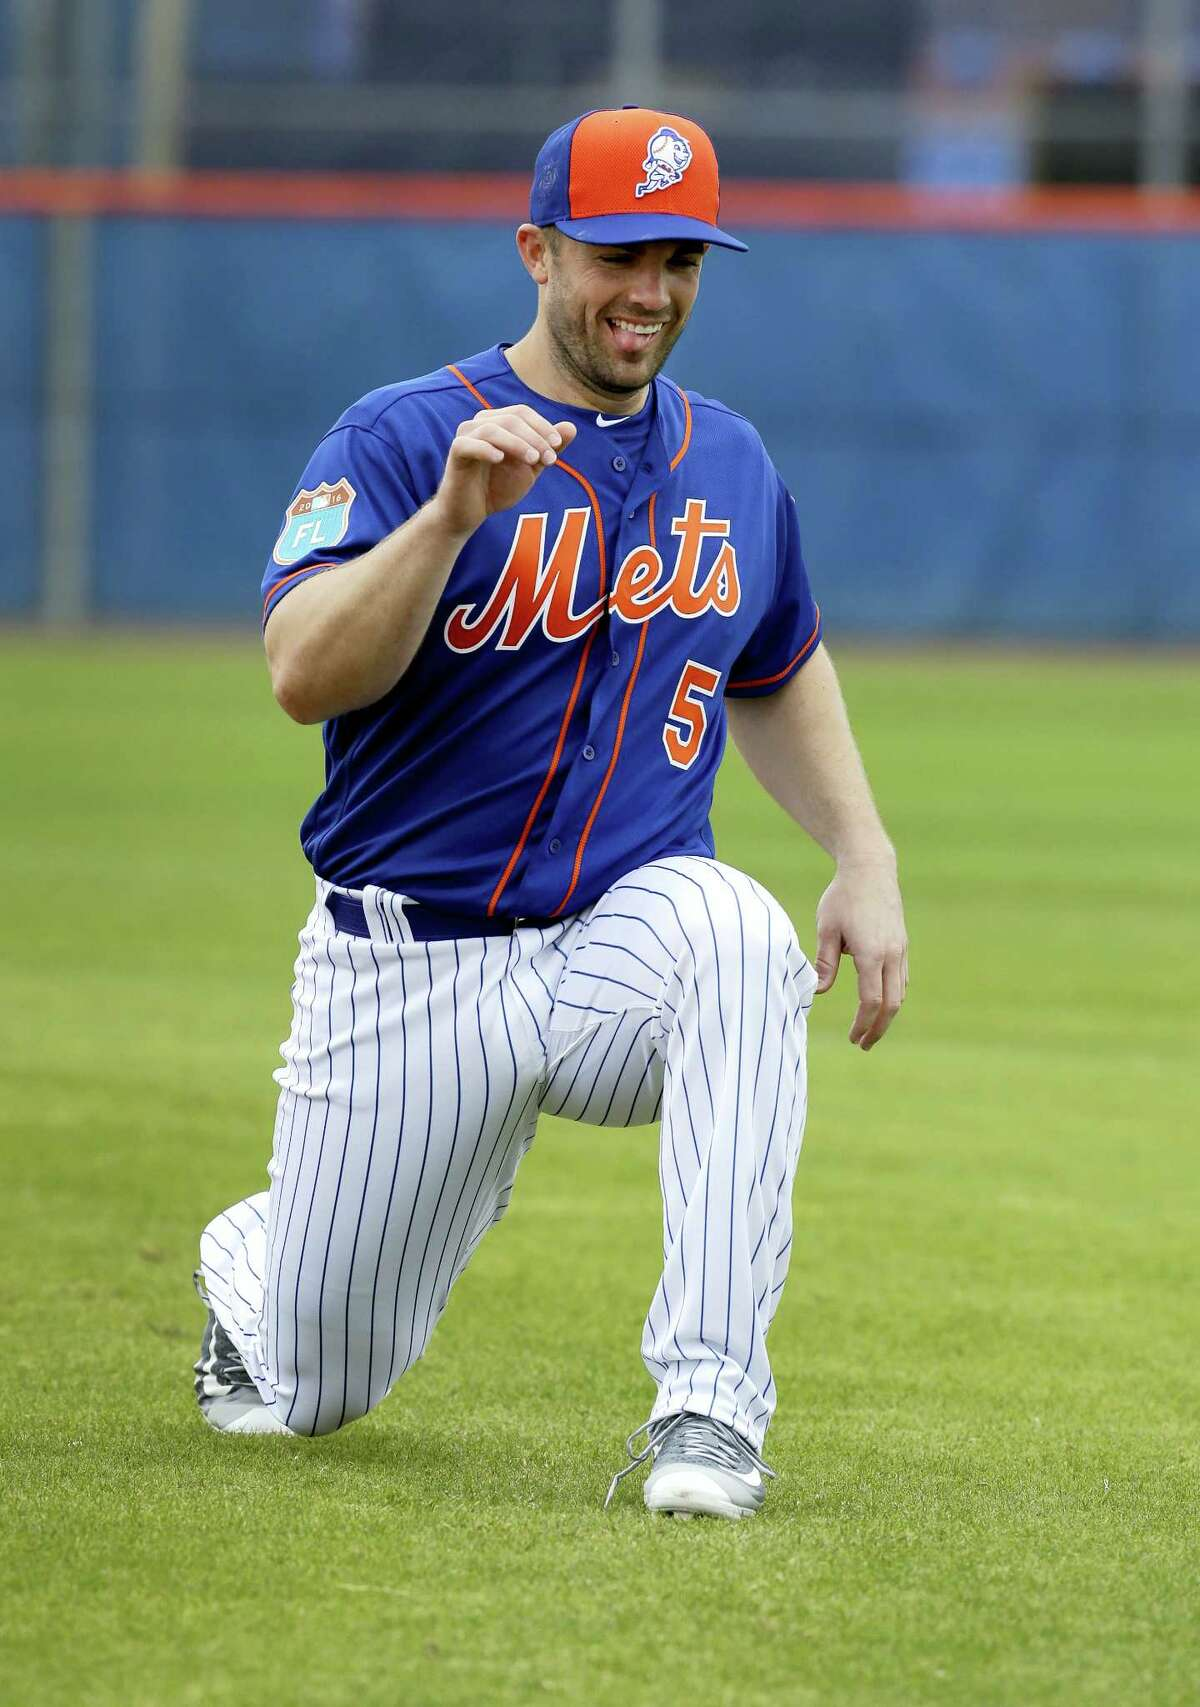 Mets third baseman David Wright warms up during practice on Friday in Port St. Lucie, Fla.